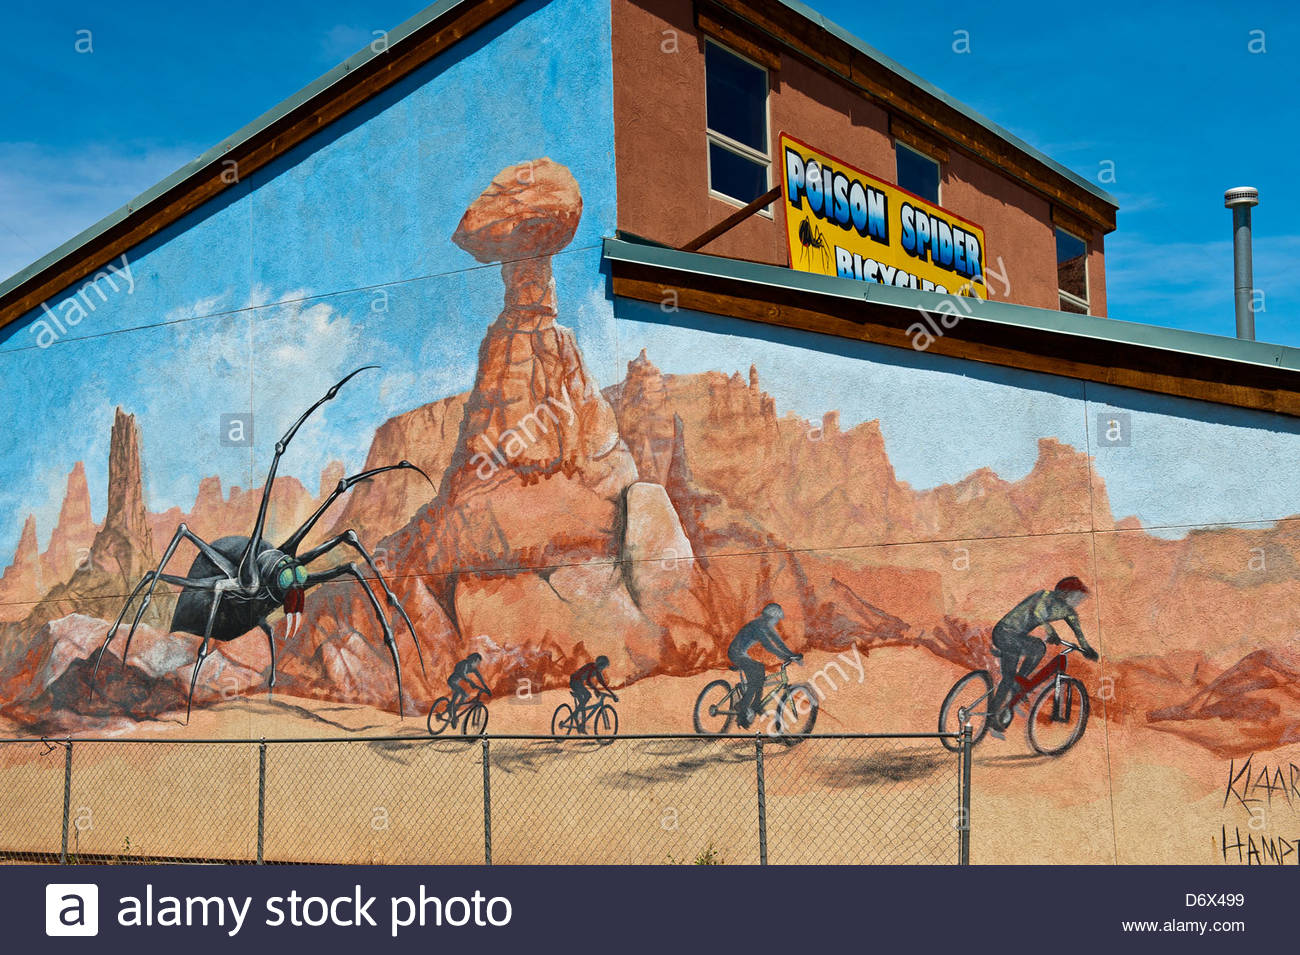 Mural, Poison Spider Bicycle Shop, Moab, Utah USA - Stock Image